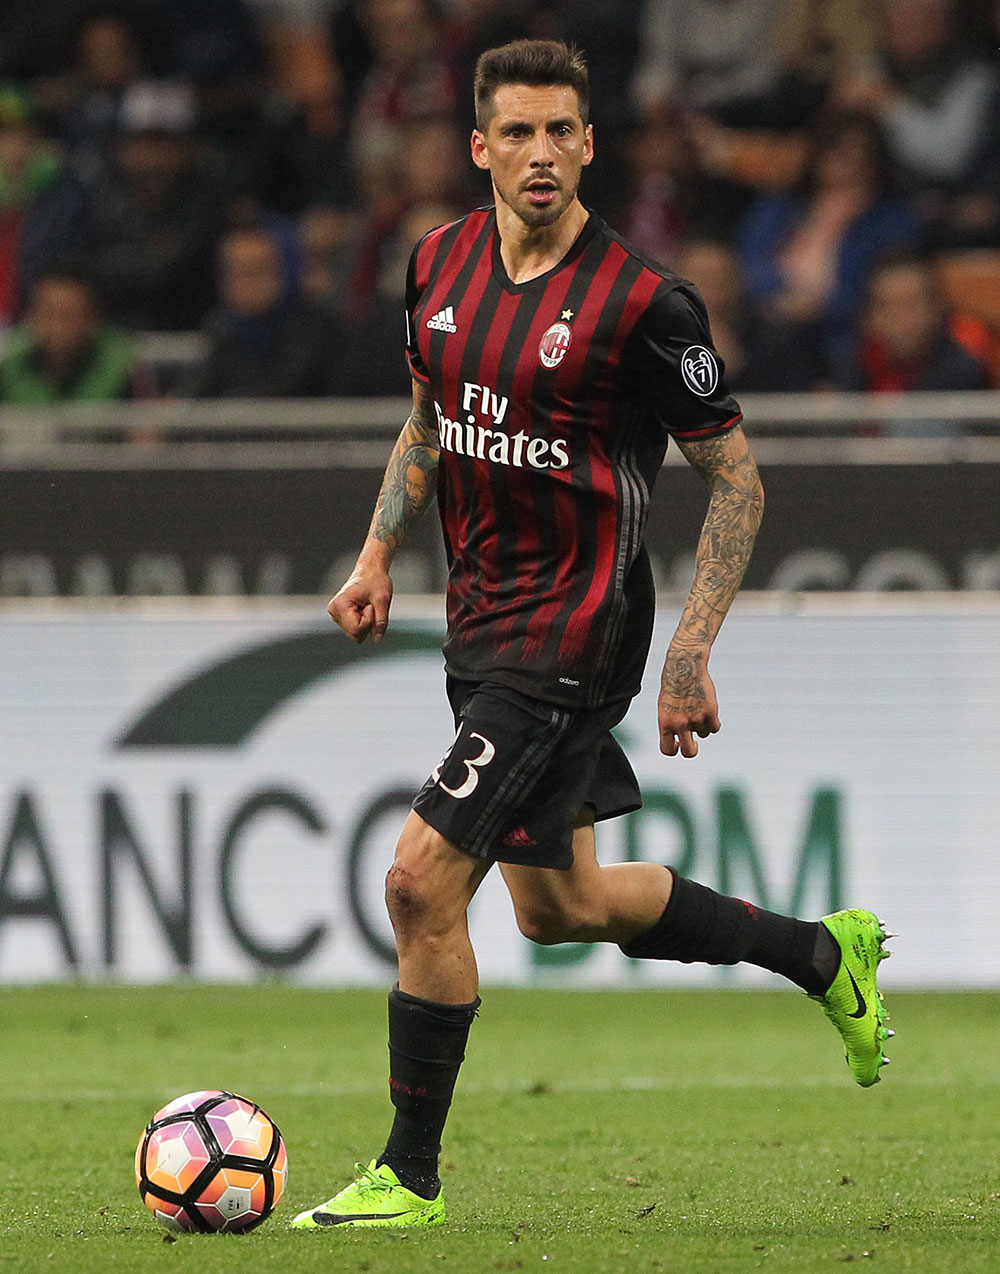 Jose Sosa during Milan-Roma at Stadio San Siro at Stadio San Siro on May 7, 2017. (Photo by Marco Luzzani/Getty Images)